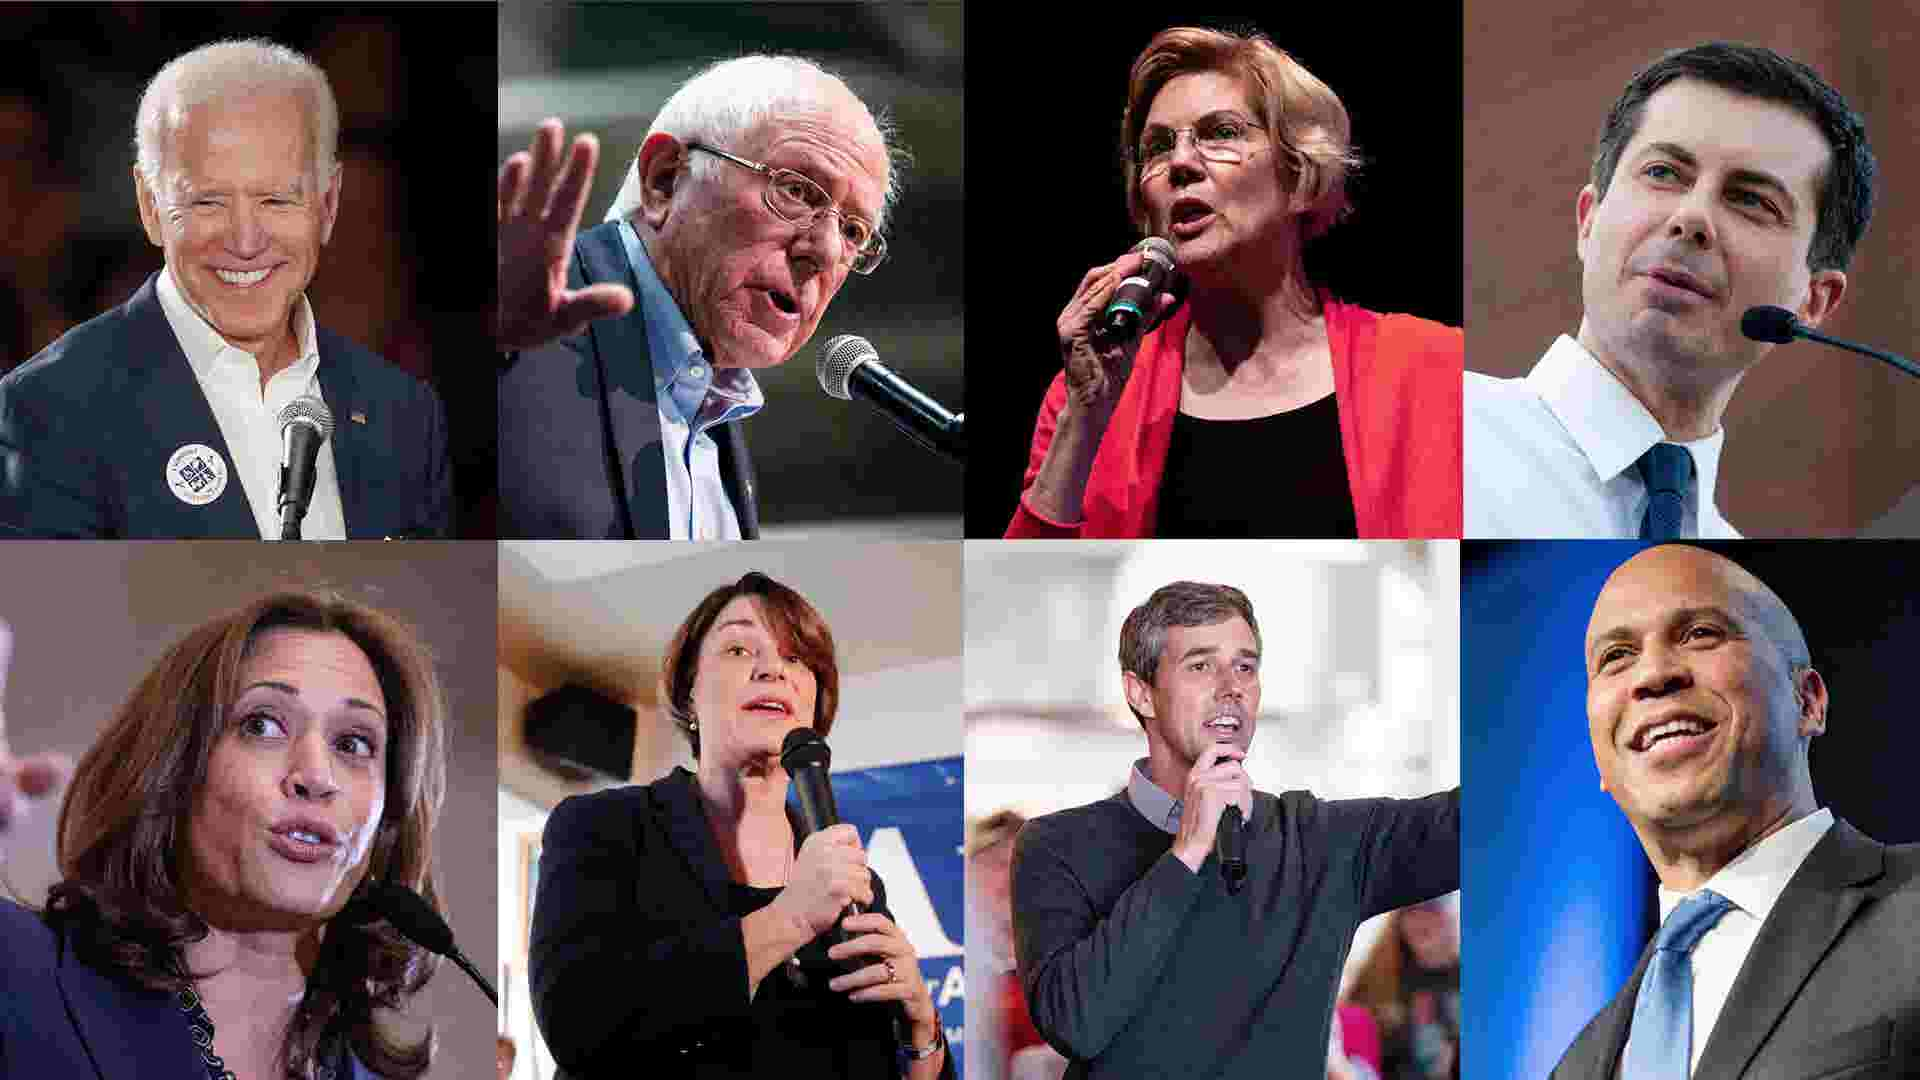 Does how your campaign is doing in August matter for February 2020